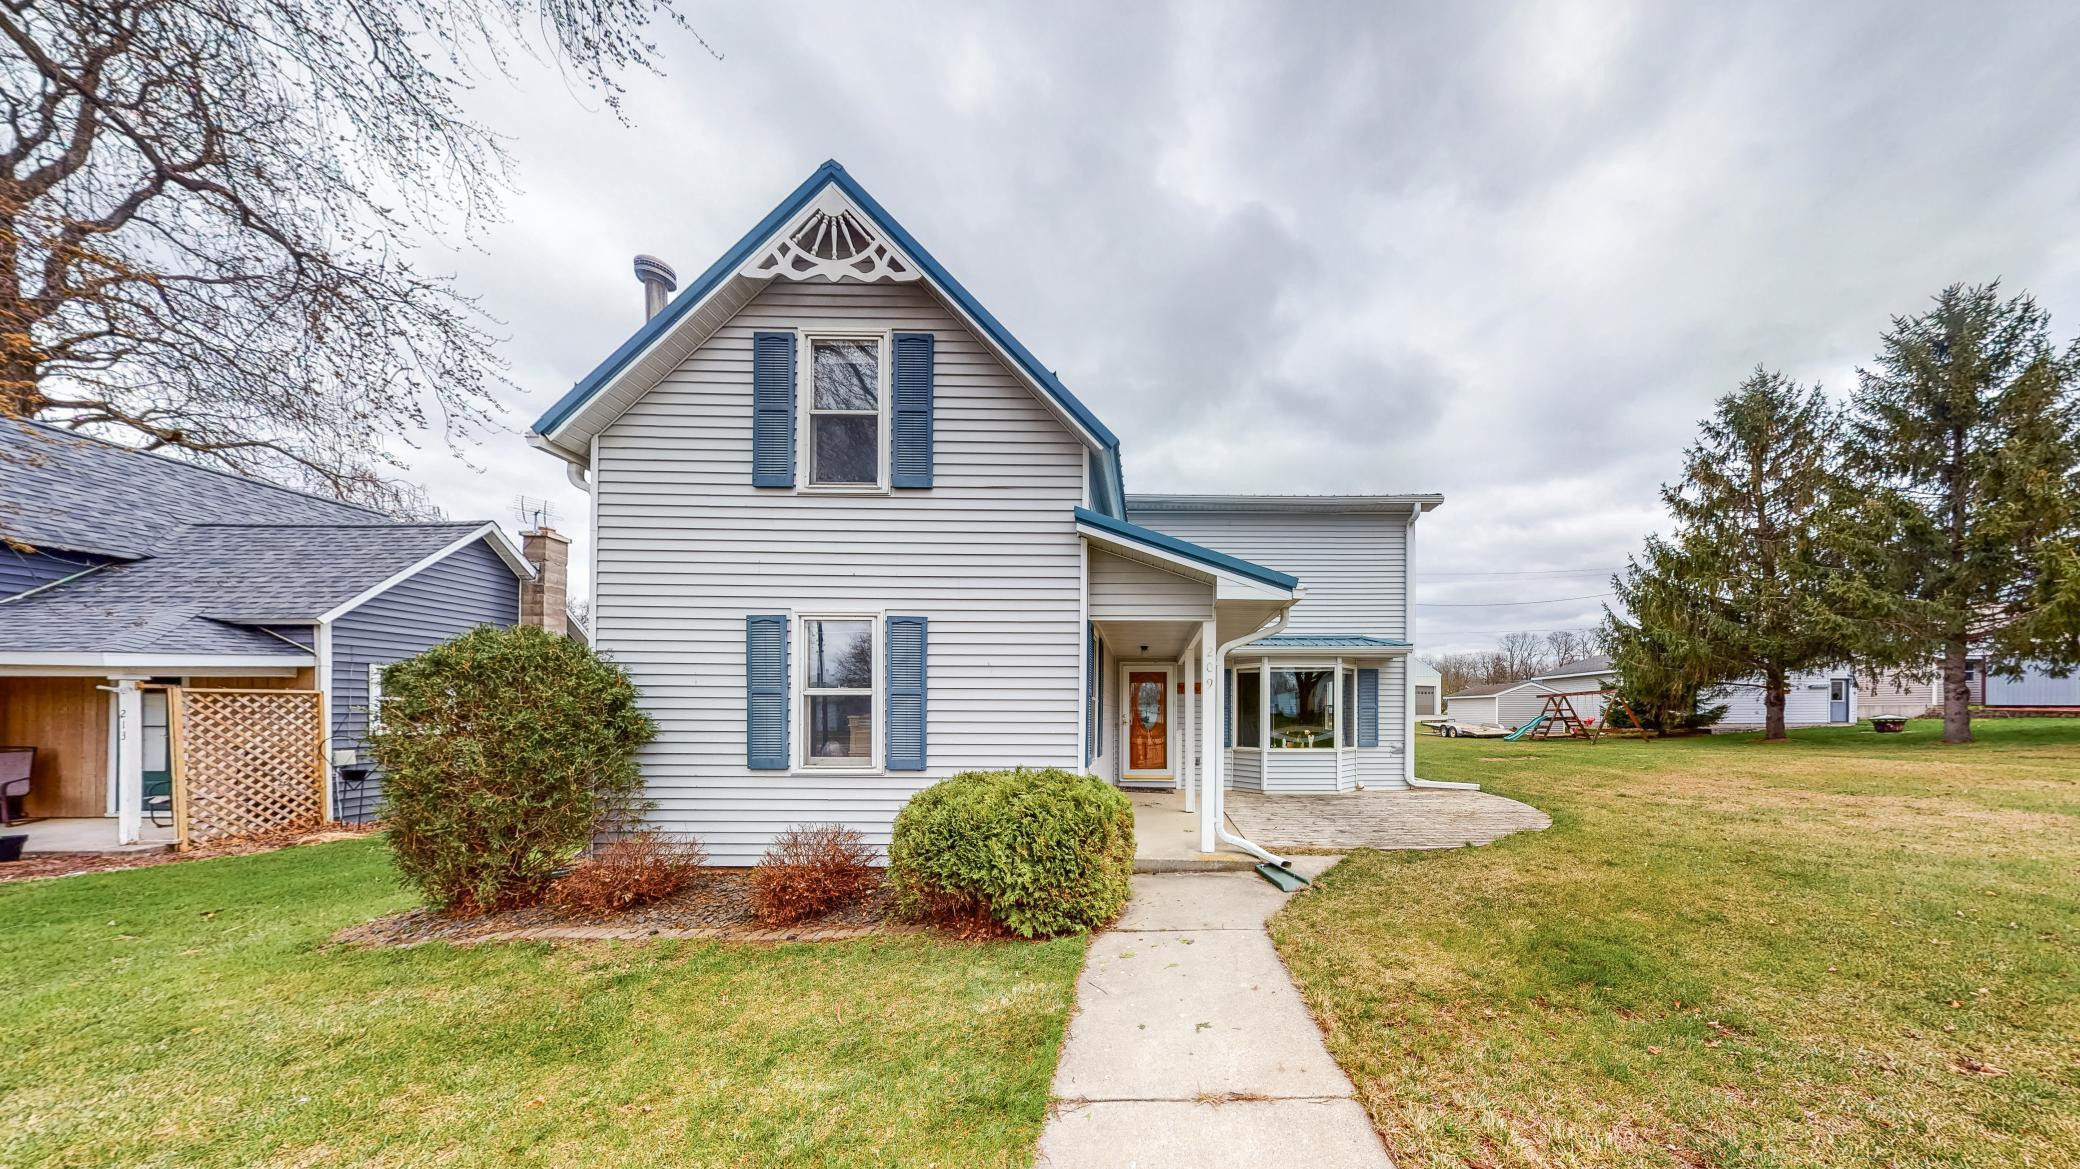 209 Main Street S, Fountain, MN 55935